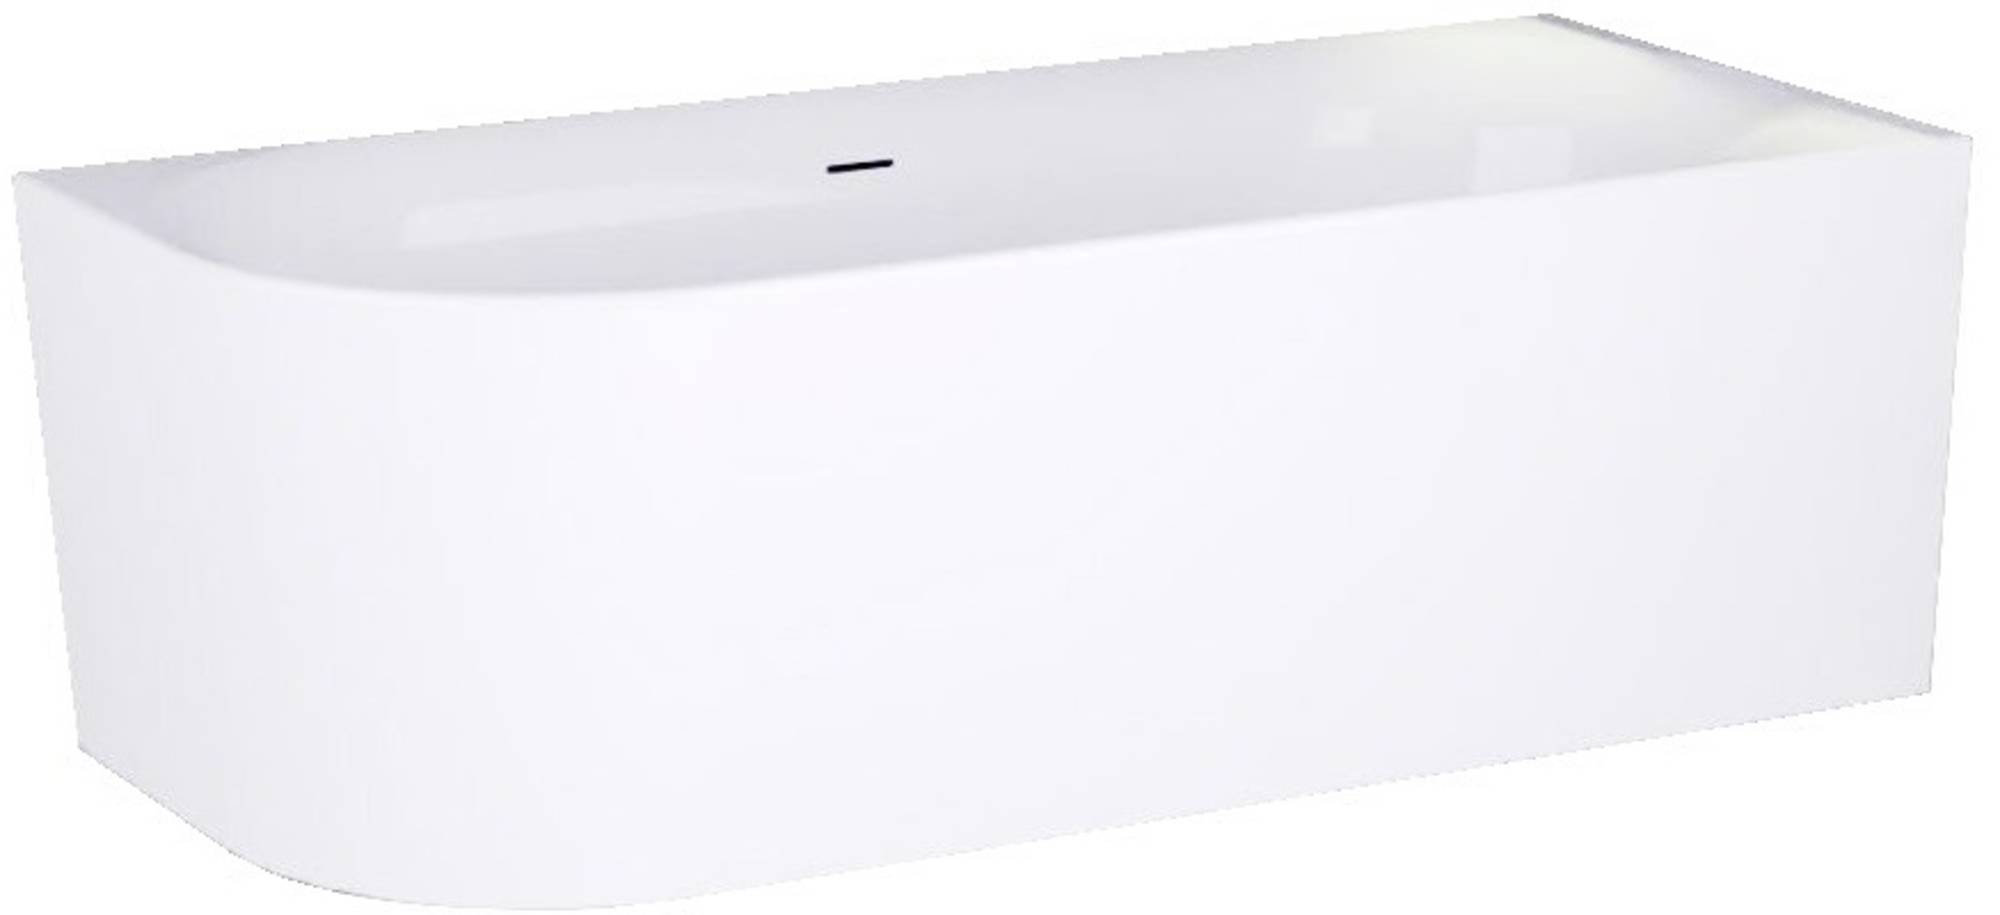 Ben Vico Bad Back to Wall R met Sleuf 180x80x60,5 cm Mat Wit